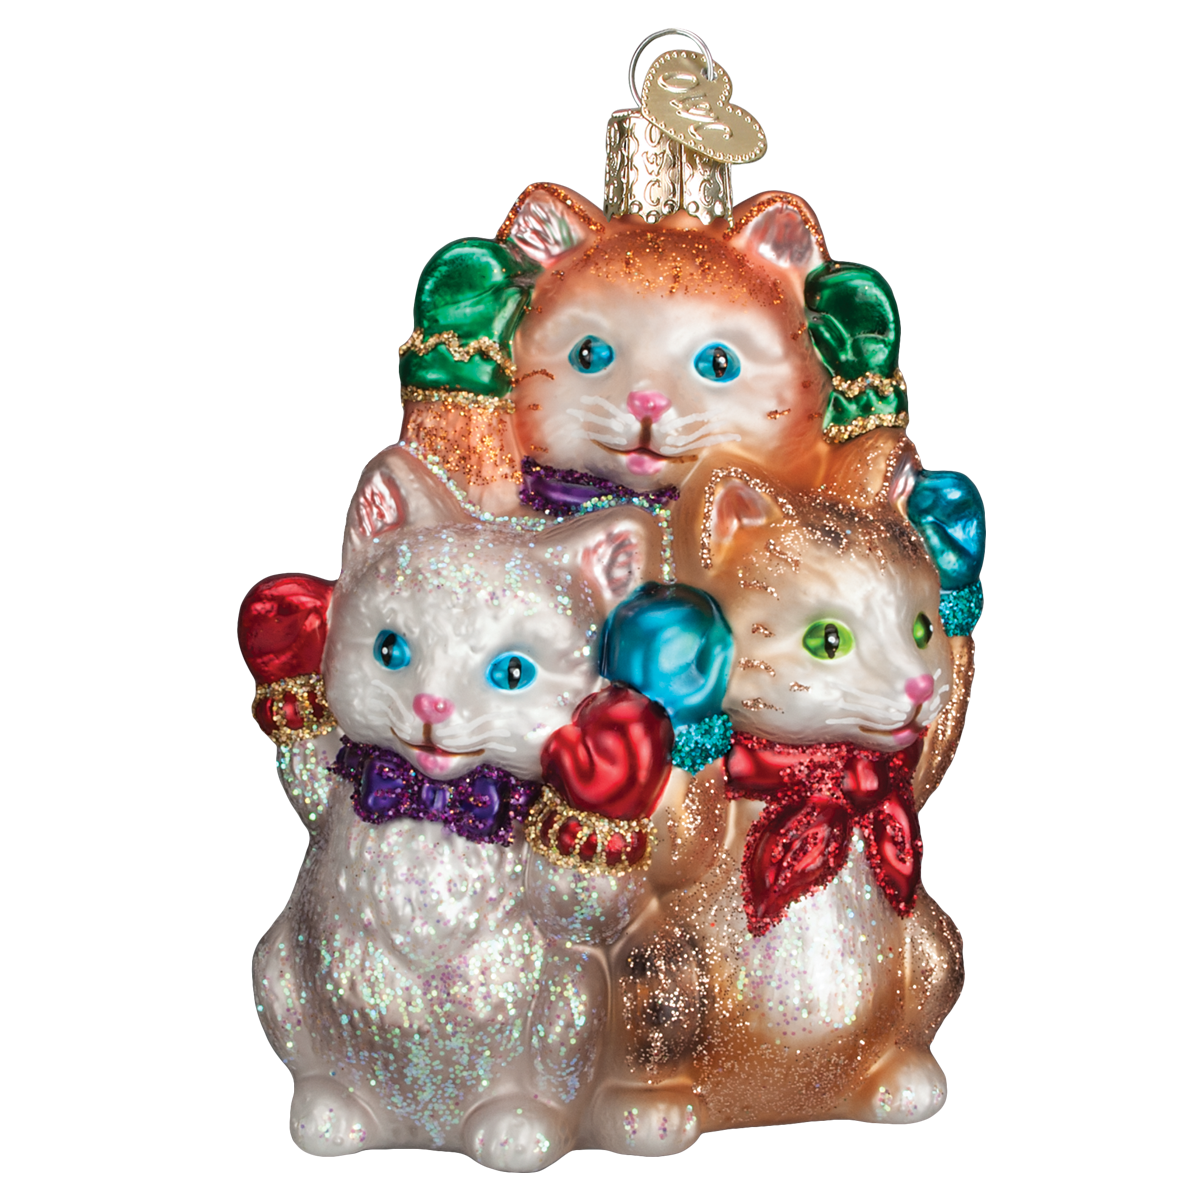 Old World Christmas Three Little Kittens Glass Christmas Ornament -  Christmas - Old World Christmas - Putti Fine Furnishings Toronto Canada - 1